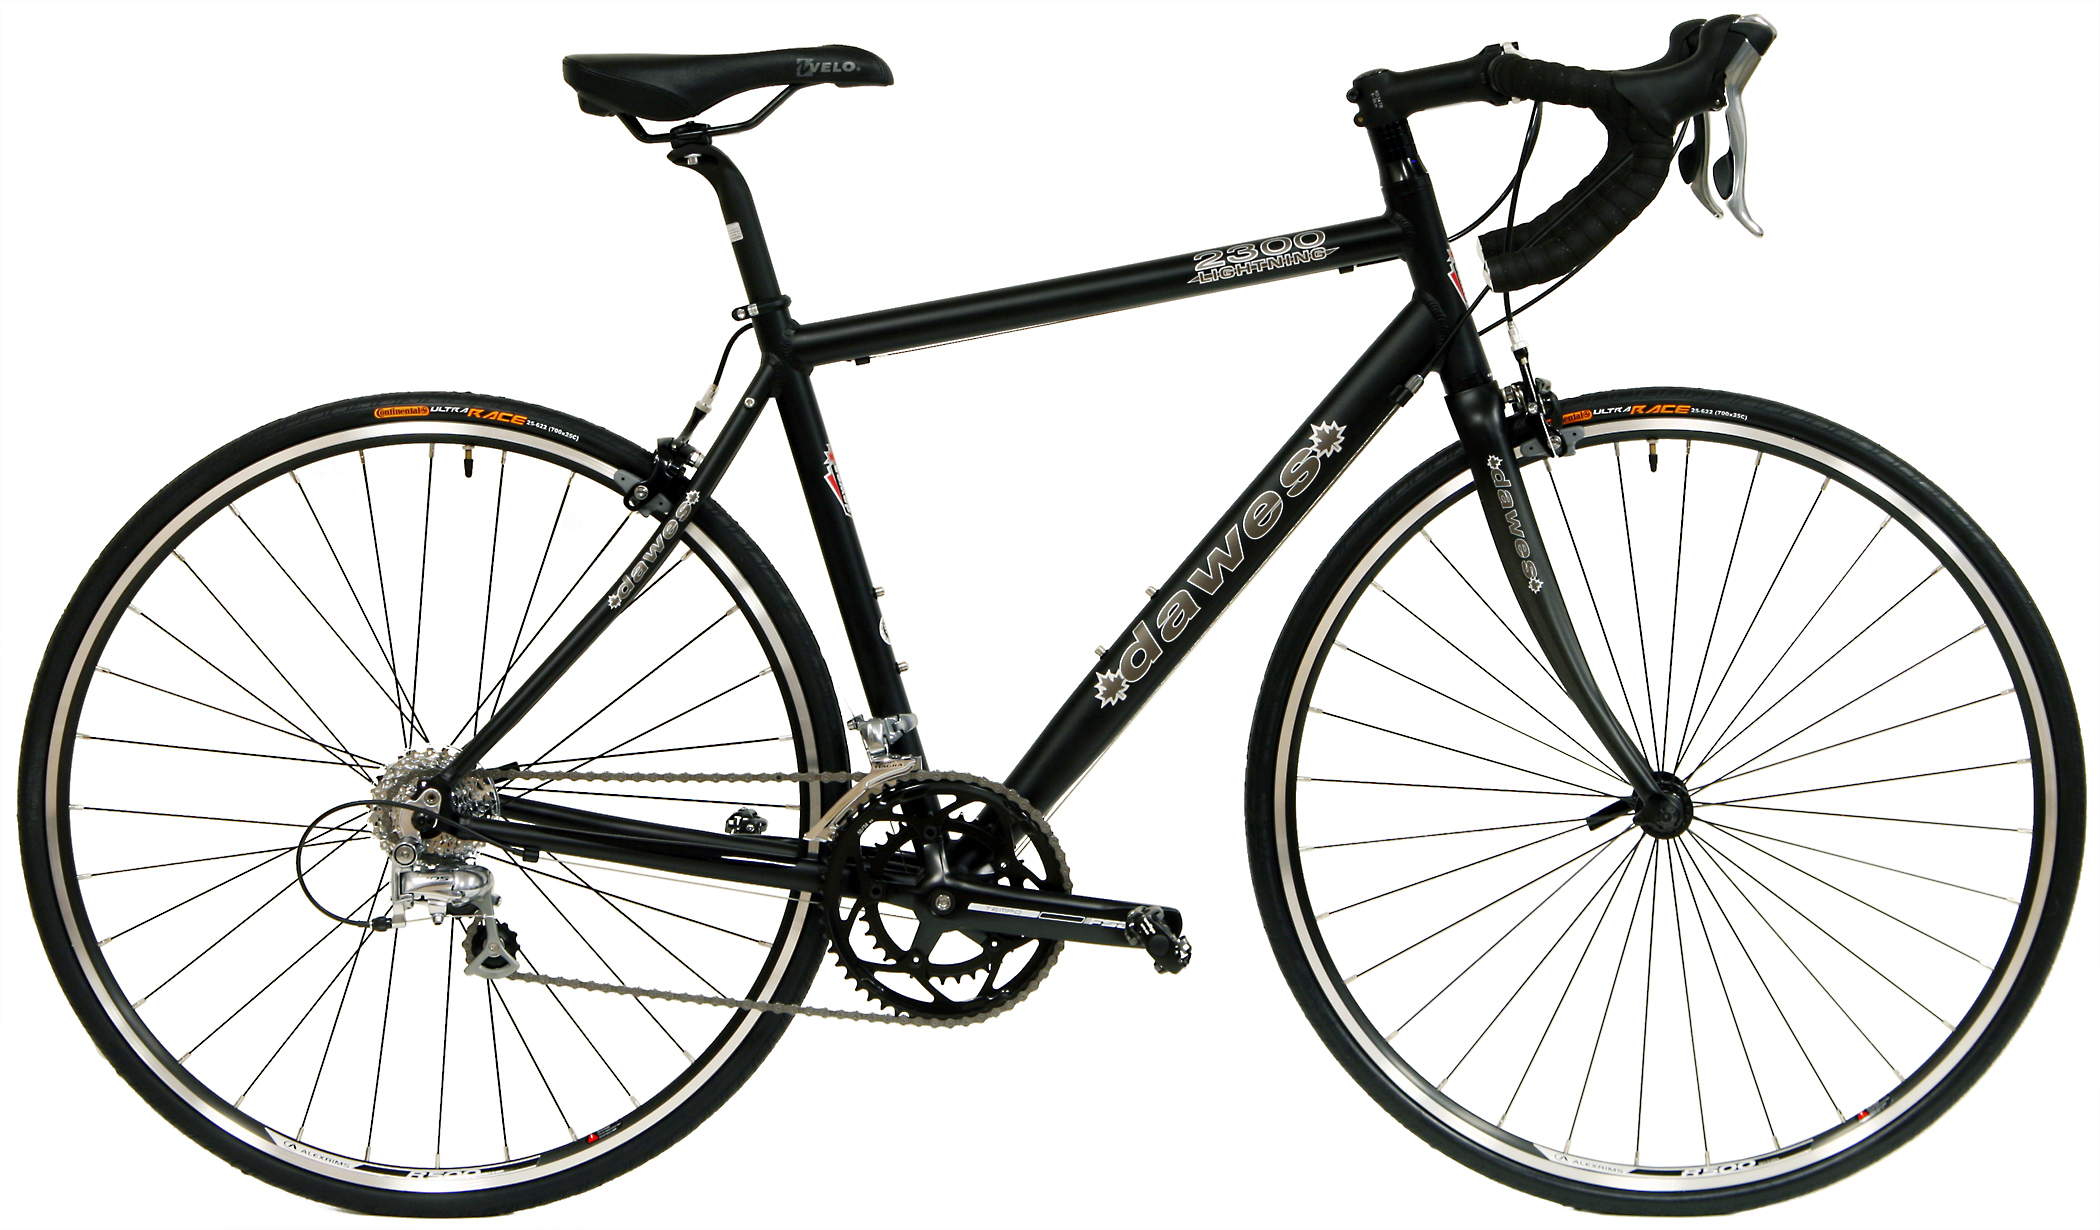 X Sold Out Dawes Lightning 2300 Advanced Bicycle Lightings